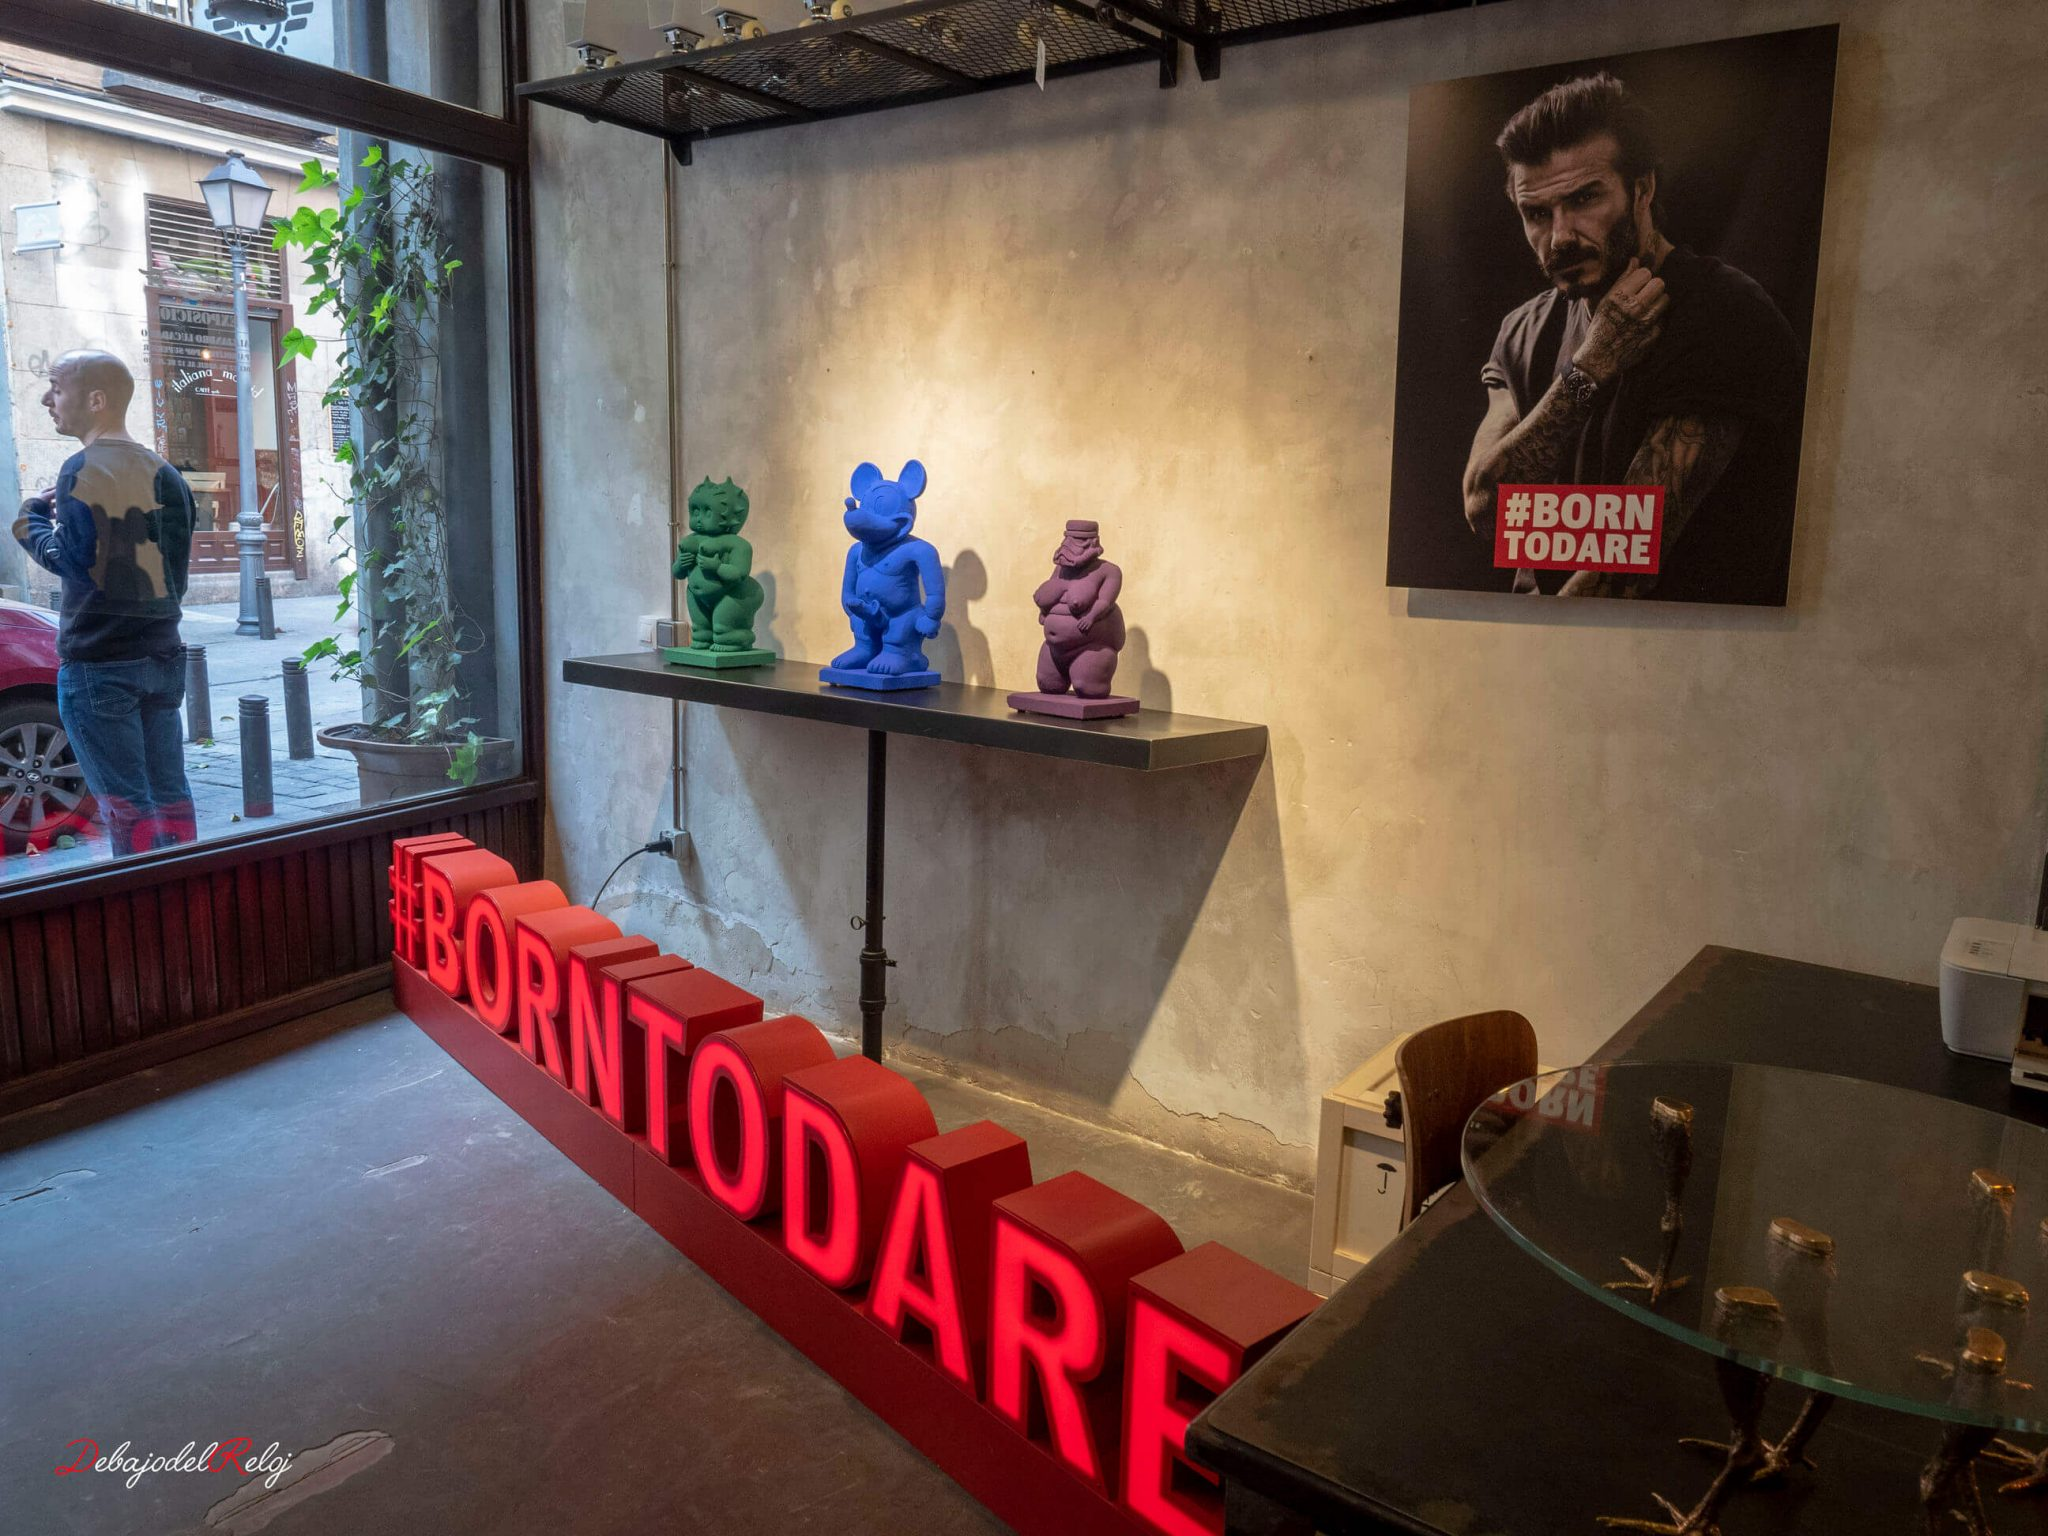 ambiente 3 born to dare tudor